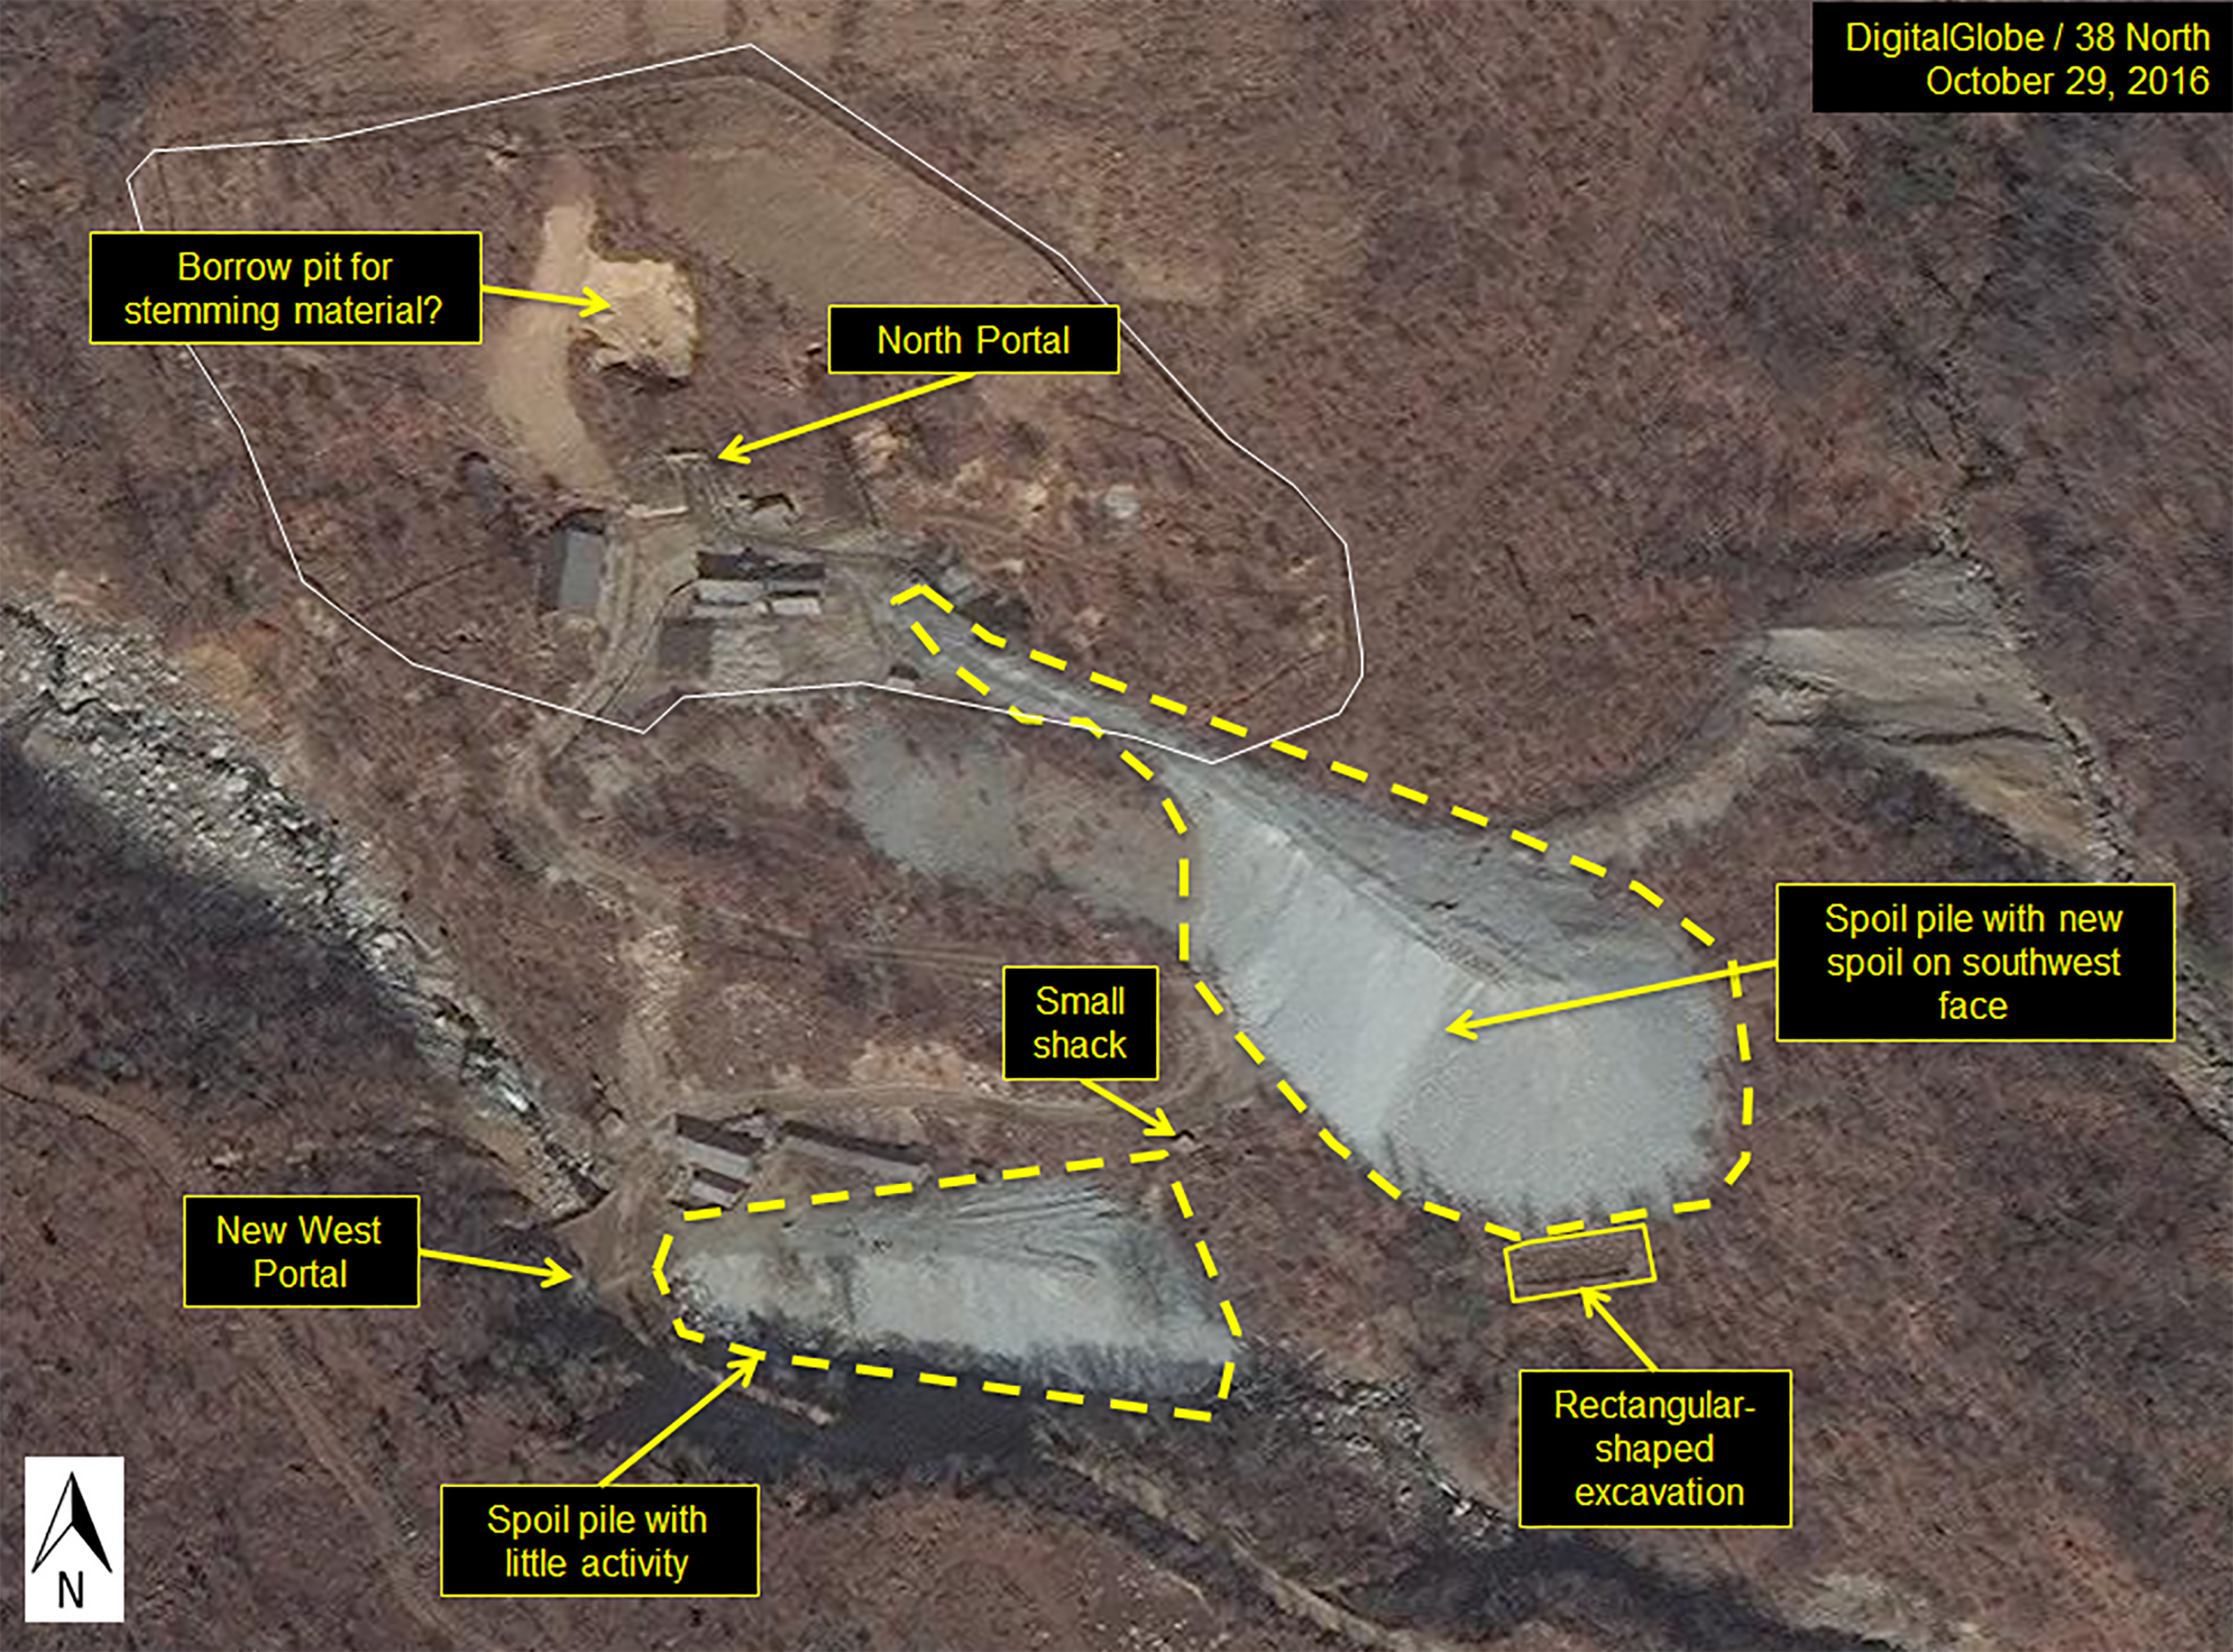 Image: Excavation continued underground on Oct. 19, 2016 in the North Portal area at the Punggye-Ri Nuclear Test Site, suggesting more tests to come in the same tunnel complex directly under Mt. Mantap.